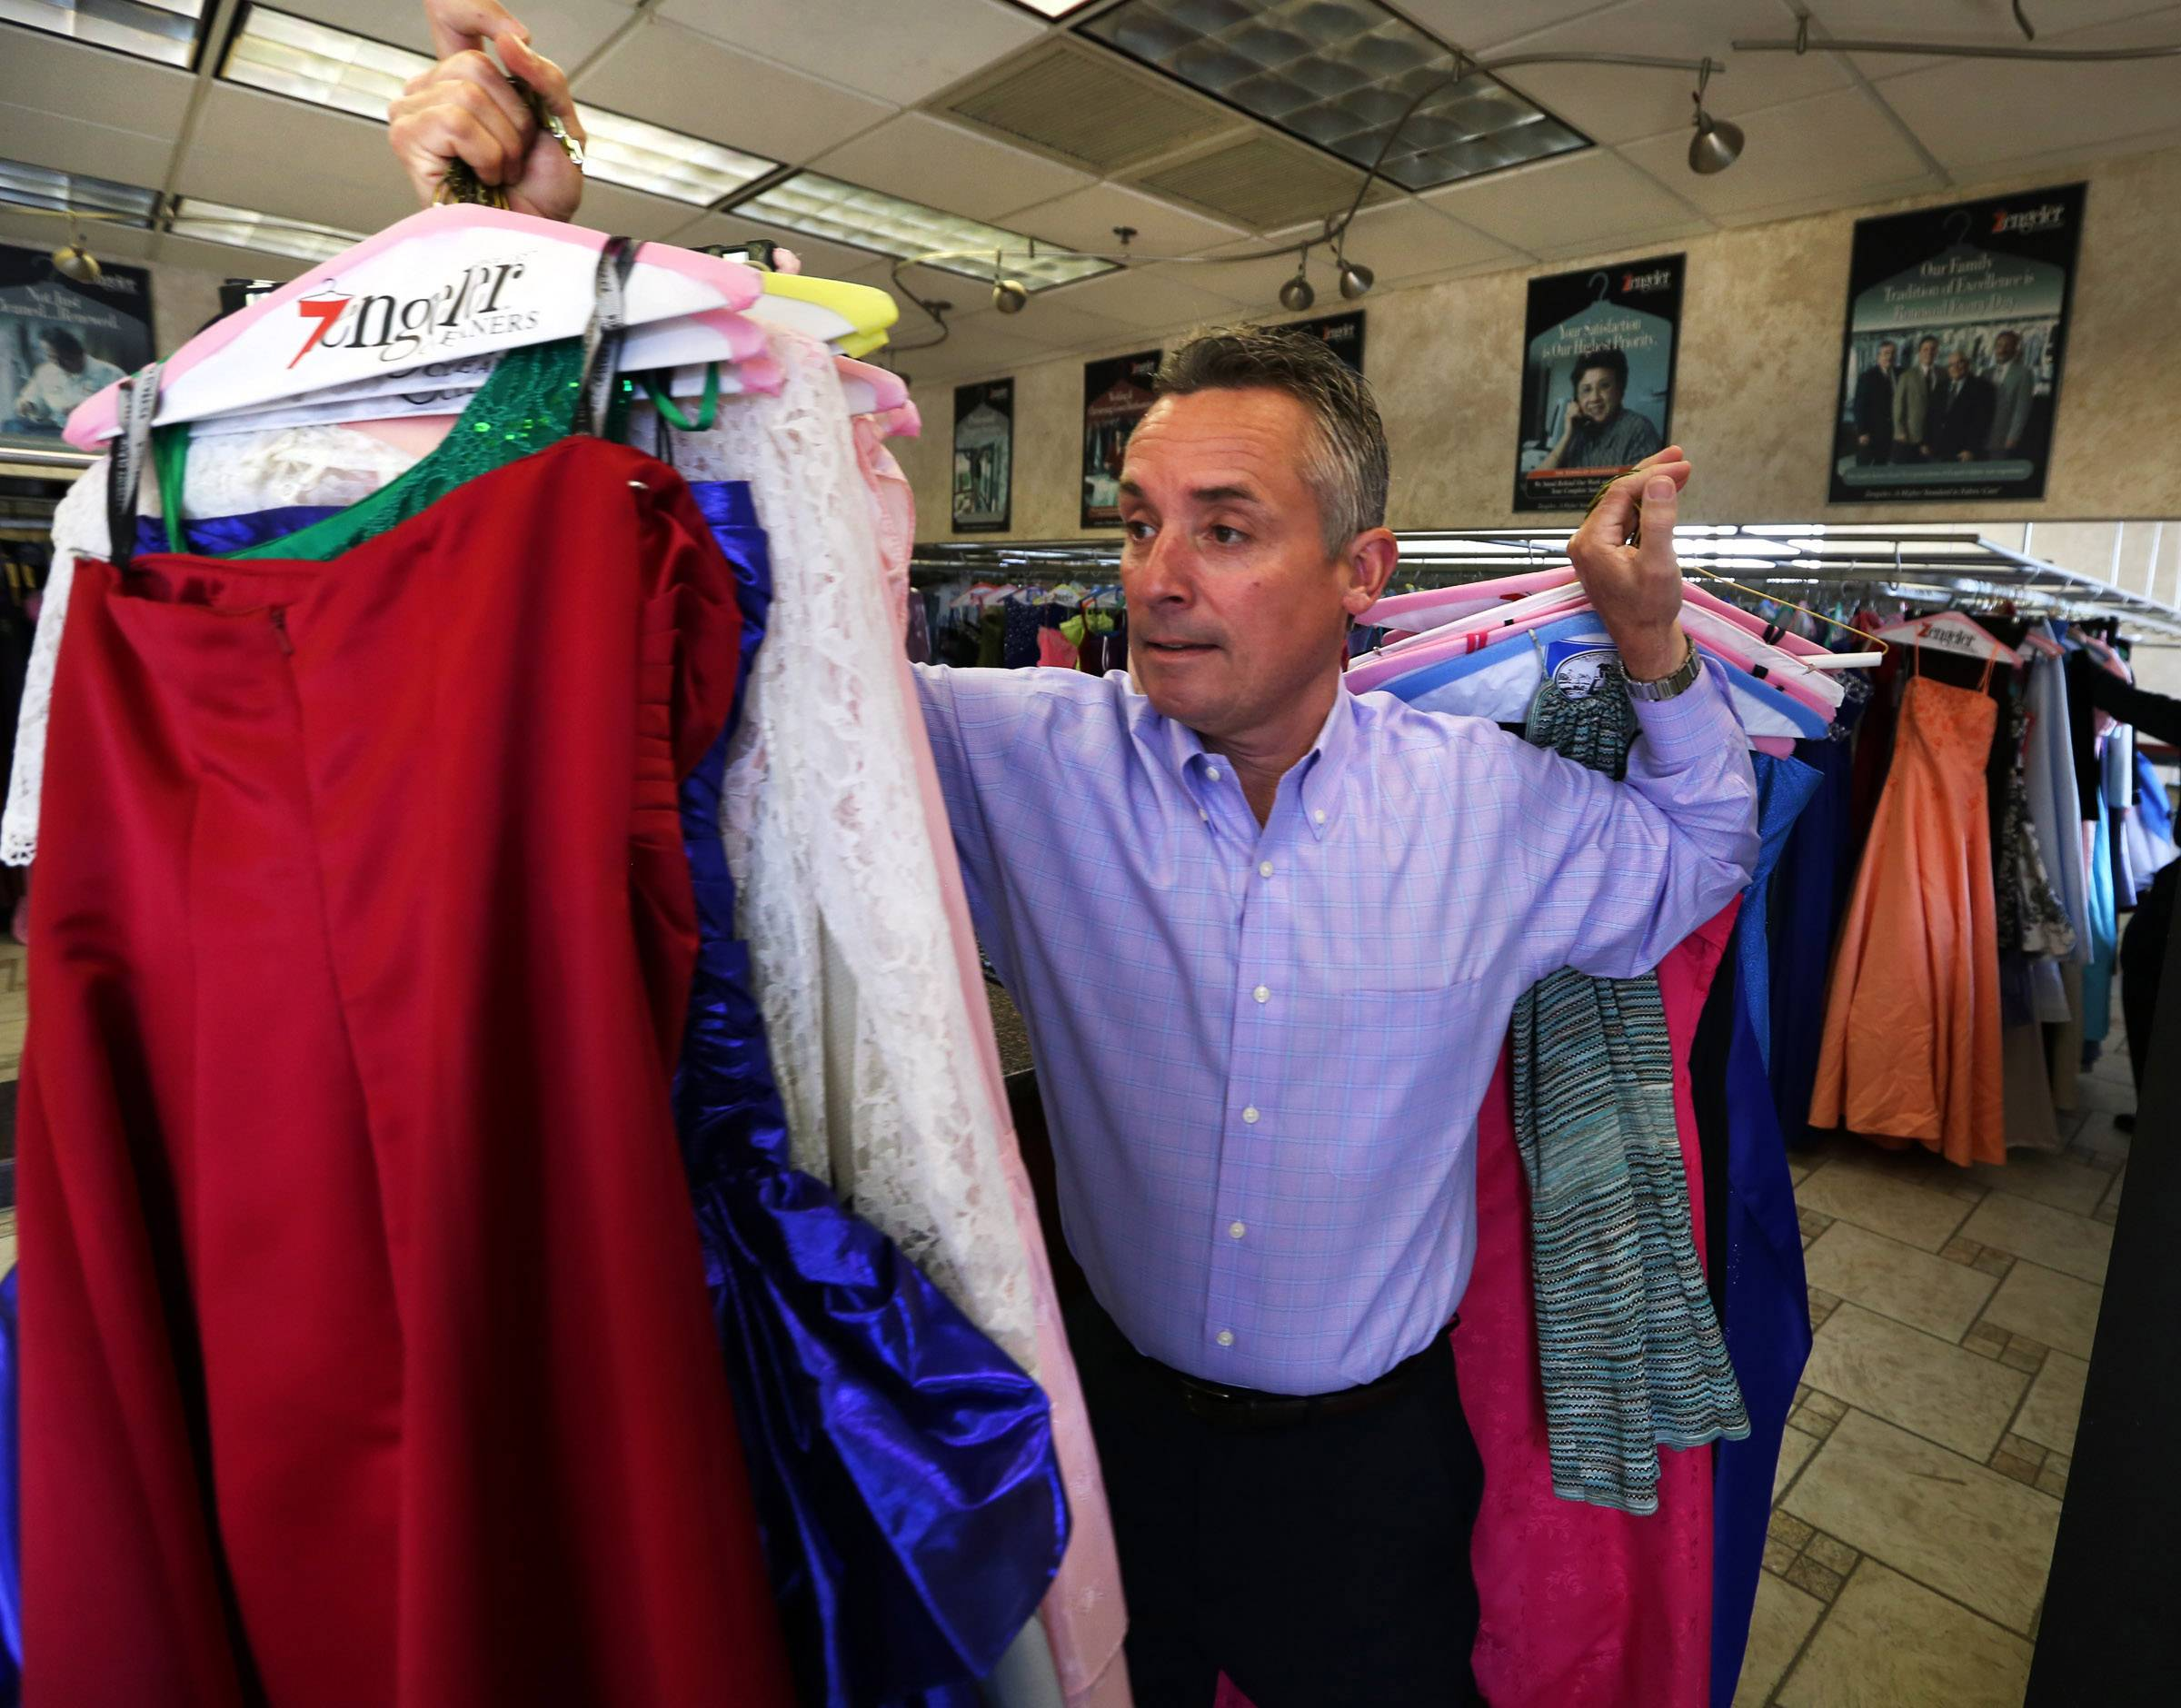 Tom Zengeler, owner of Zengeler Cleaners, carries prom dresses out of cleaners in Northbrook to a van on Saturday. The dresses are being delivered to Chicago for girls from needy families as part of the Glass Slipper Project.